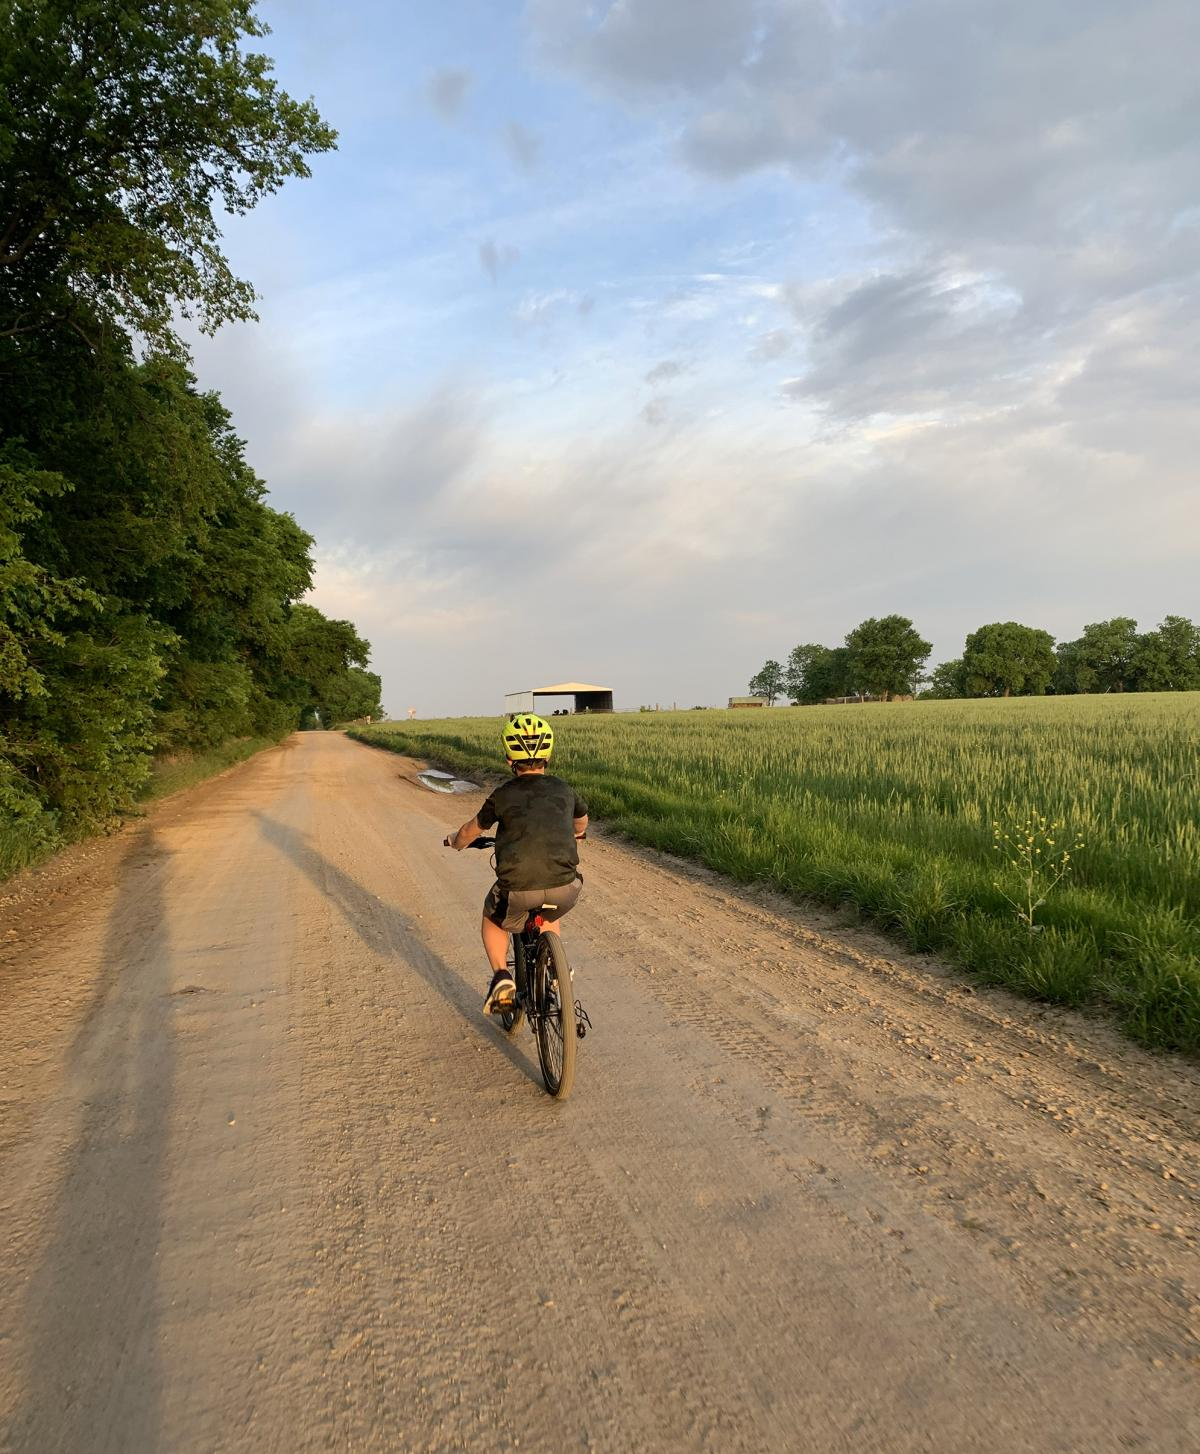 Keriann Wilmot's 10-year-old son, who has ADHD, rides his bike before school starts to help him stay focused once classwork begins.